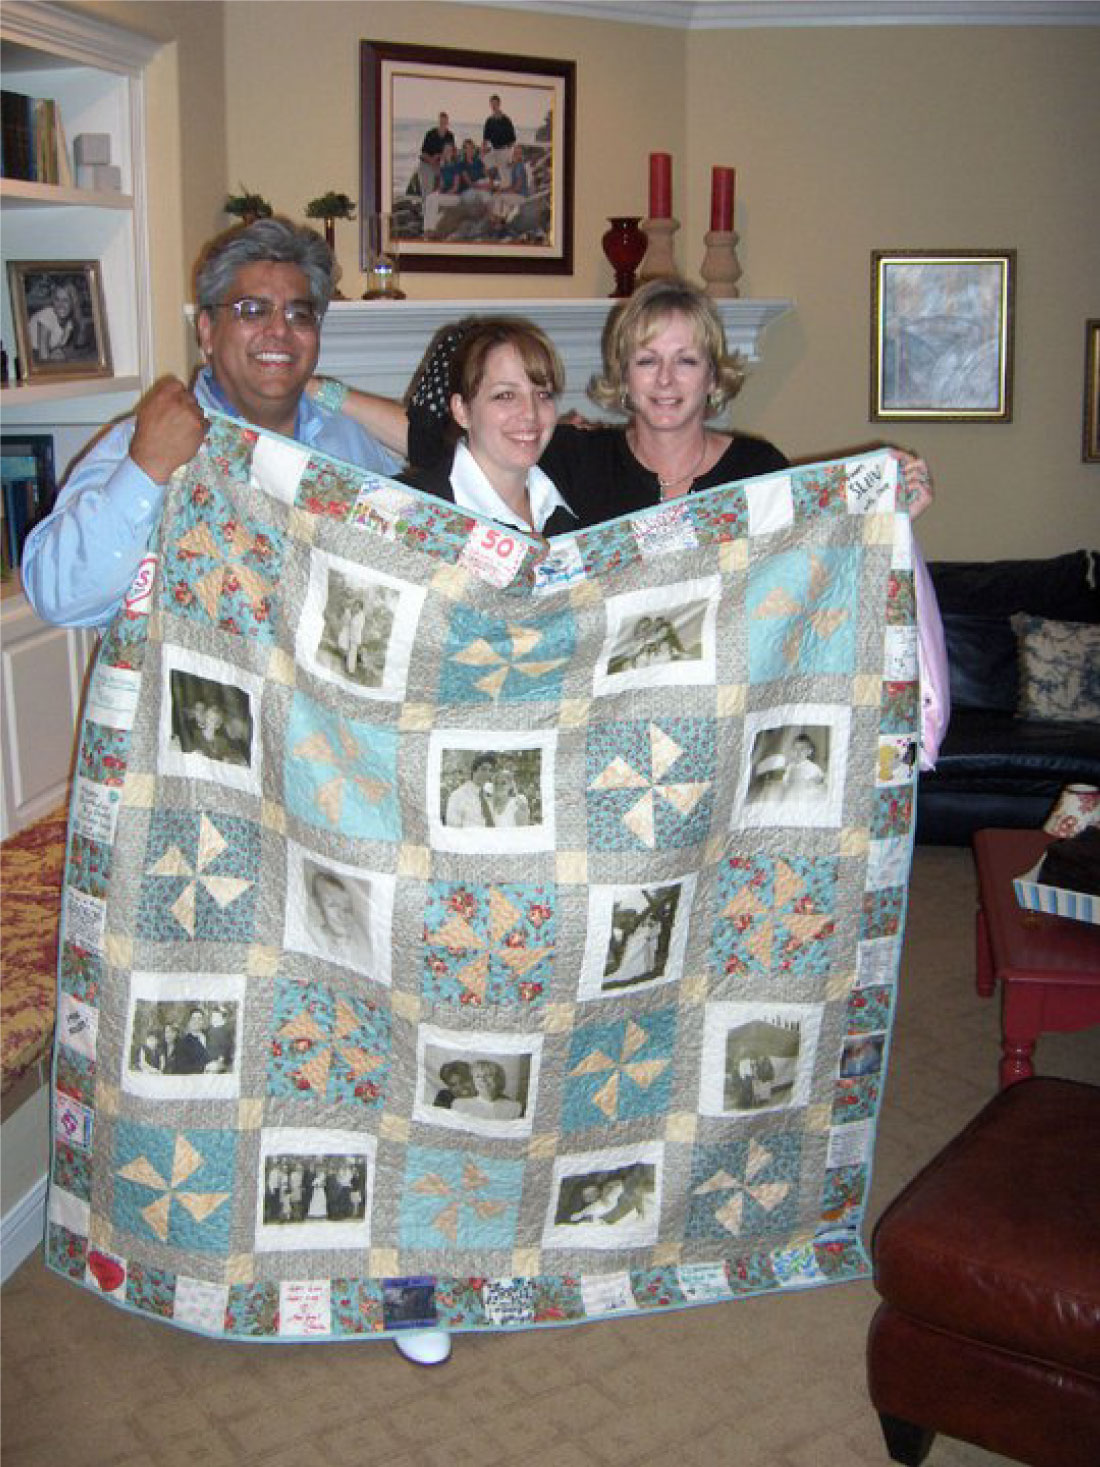 Dad, me and Mom - quilt gift